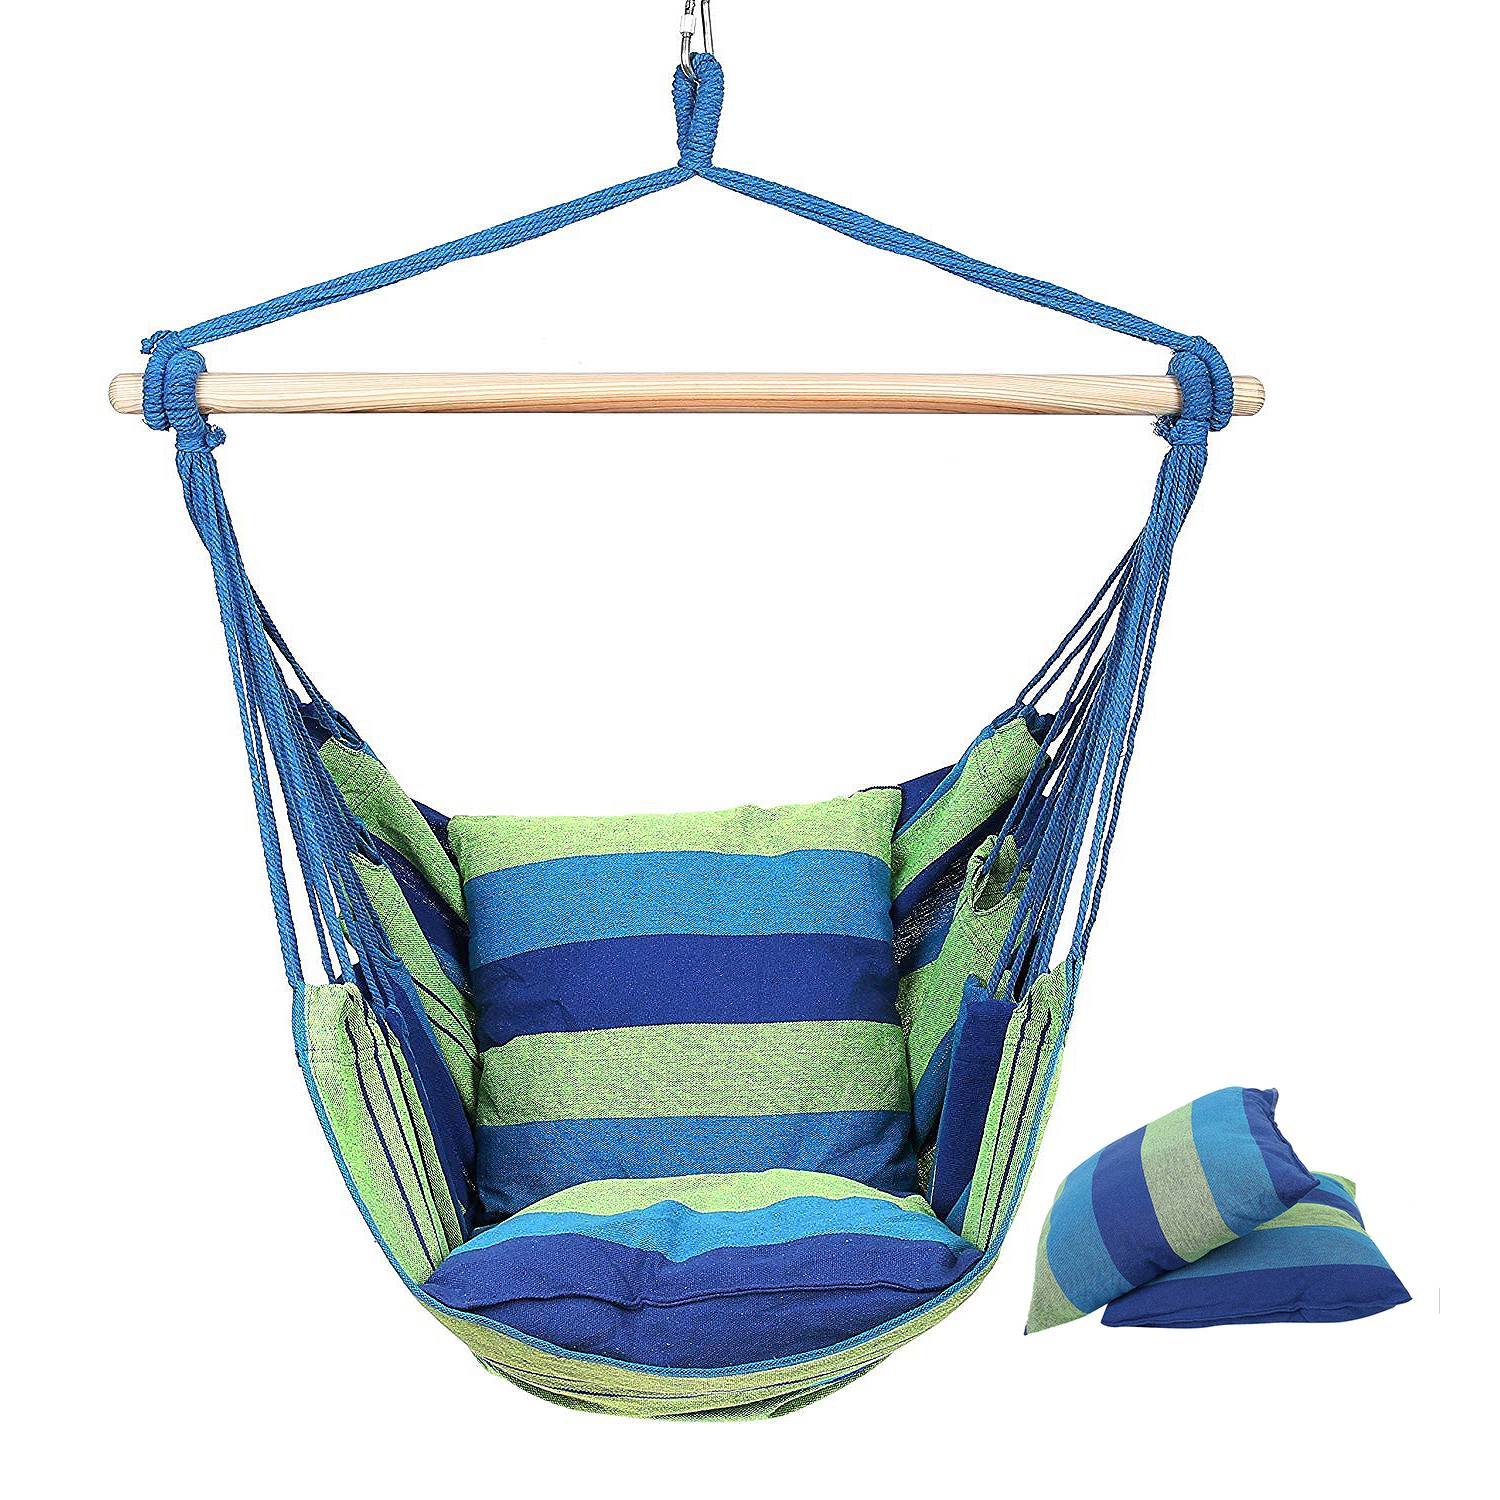 Hammock Chair Hanging Chair Swing Chair Seat With 2 Pillows For Indoor Outdoor Garden BlueHammock Chair Hanging Chair Swing Chair Seat With 2 Pillows For Indoor Outdoor Garden Blue